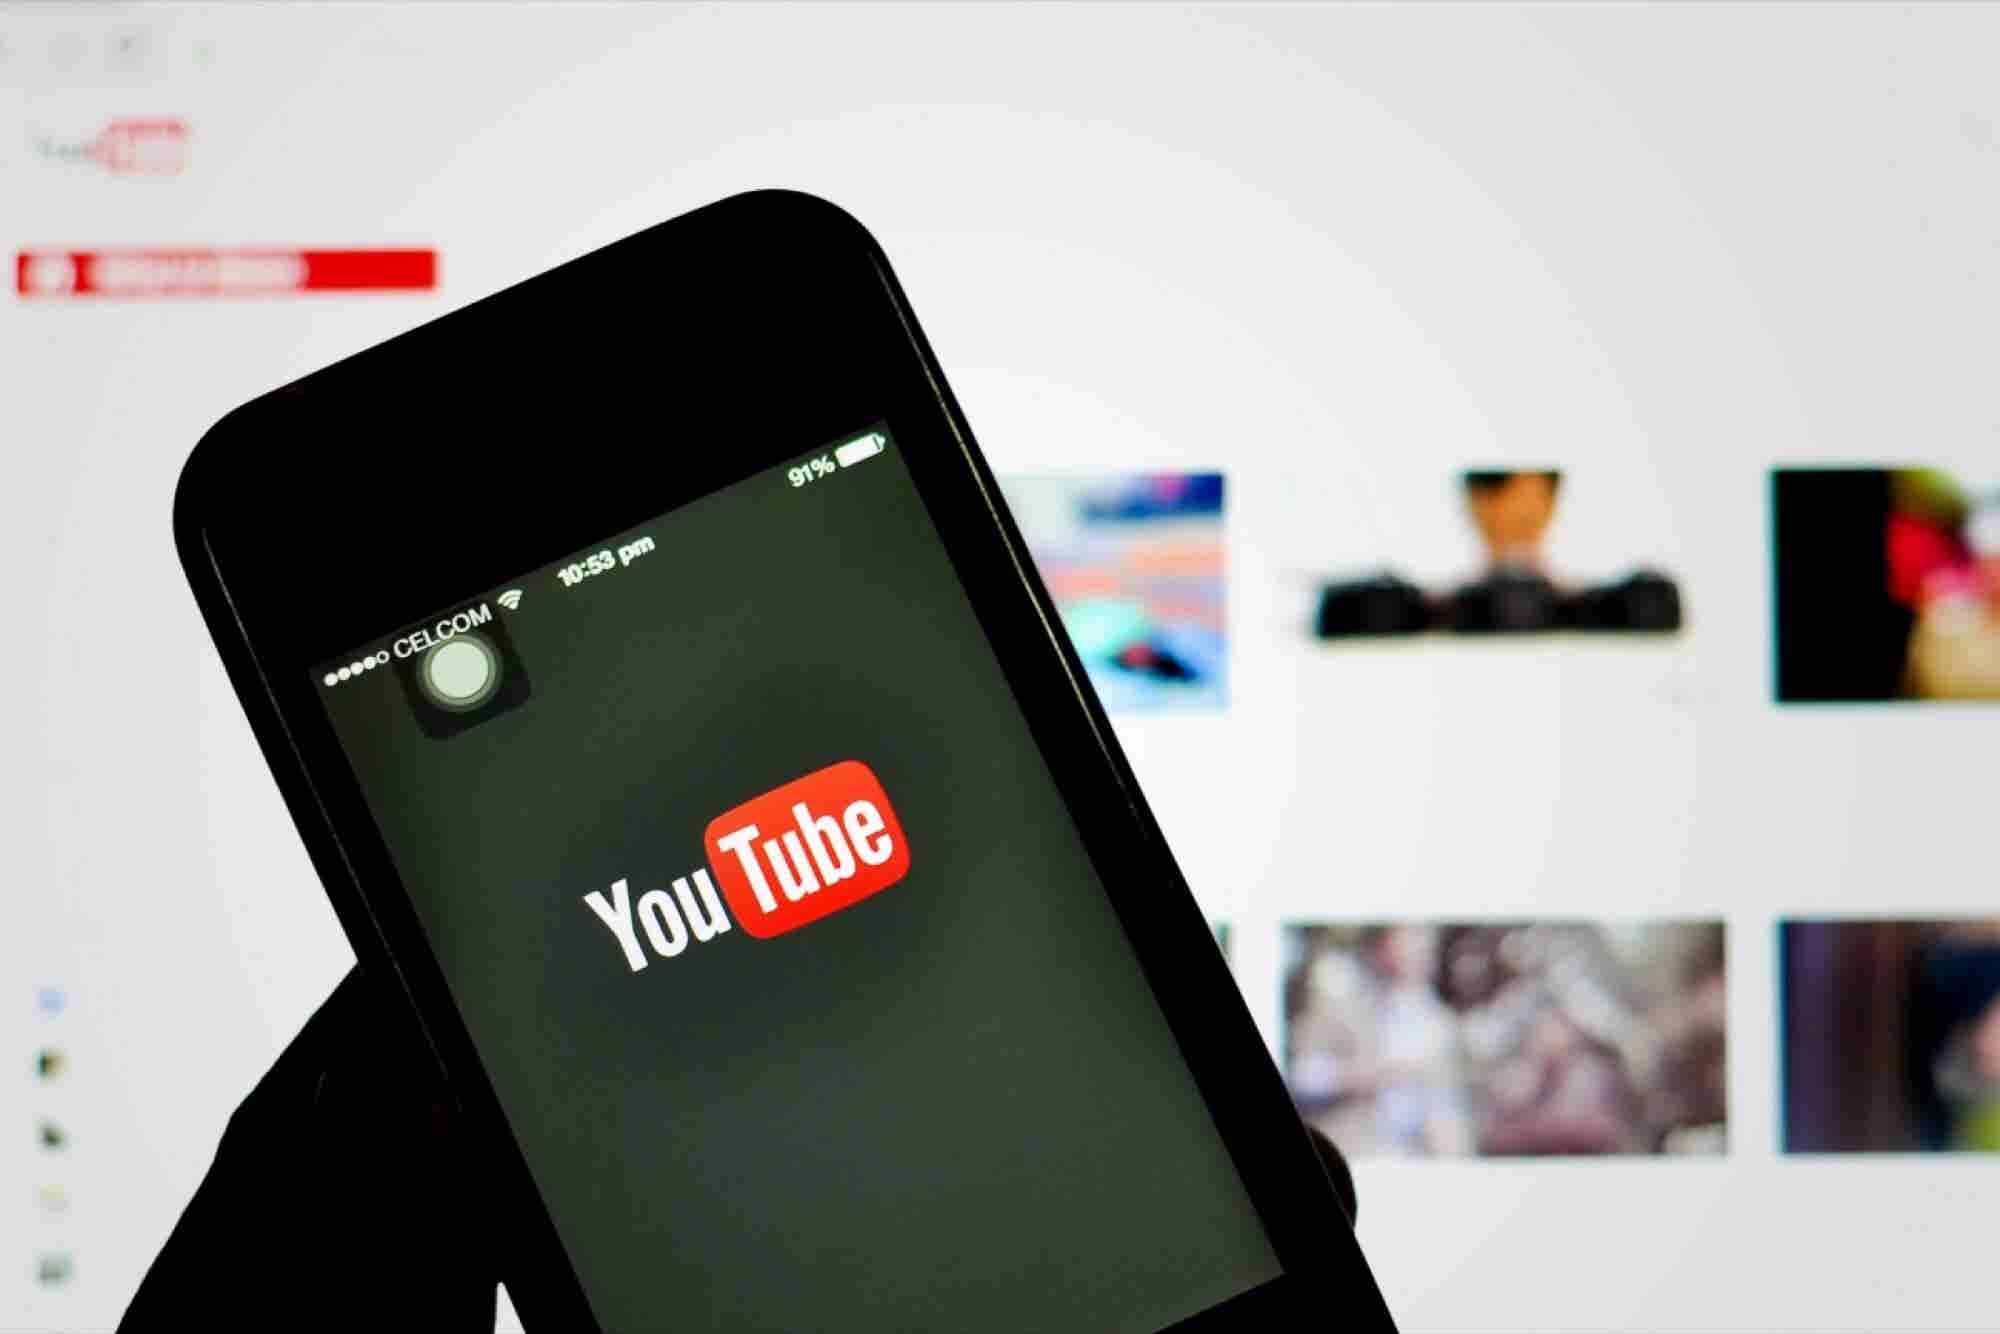 This One Video Convinced Google to Buy YouTube in 2006